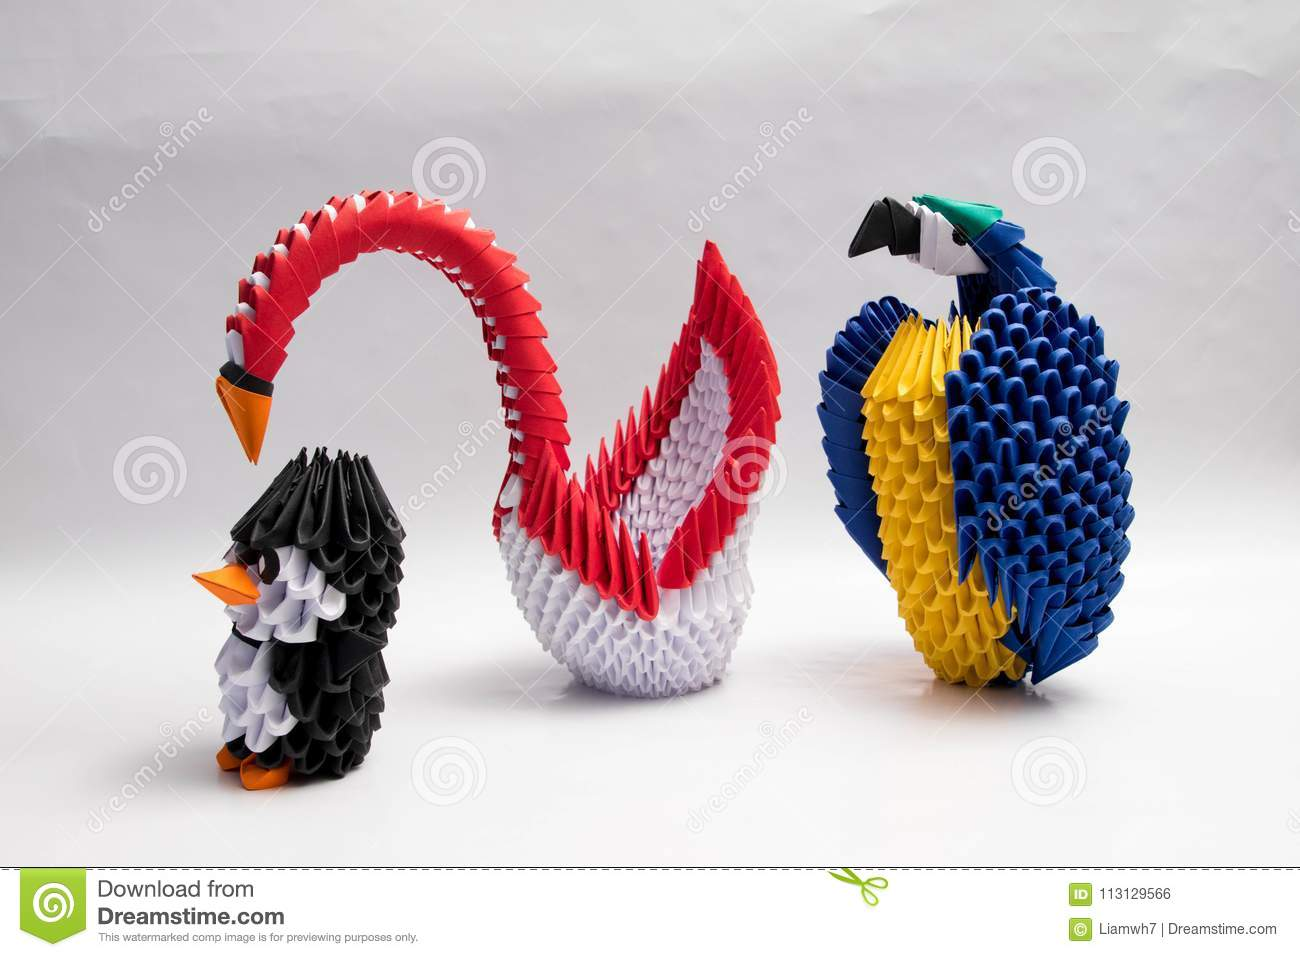 3D Origami Swan Penguin Parot Animal Close Up White Background